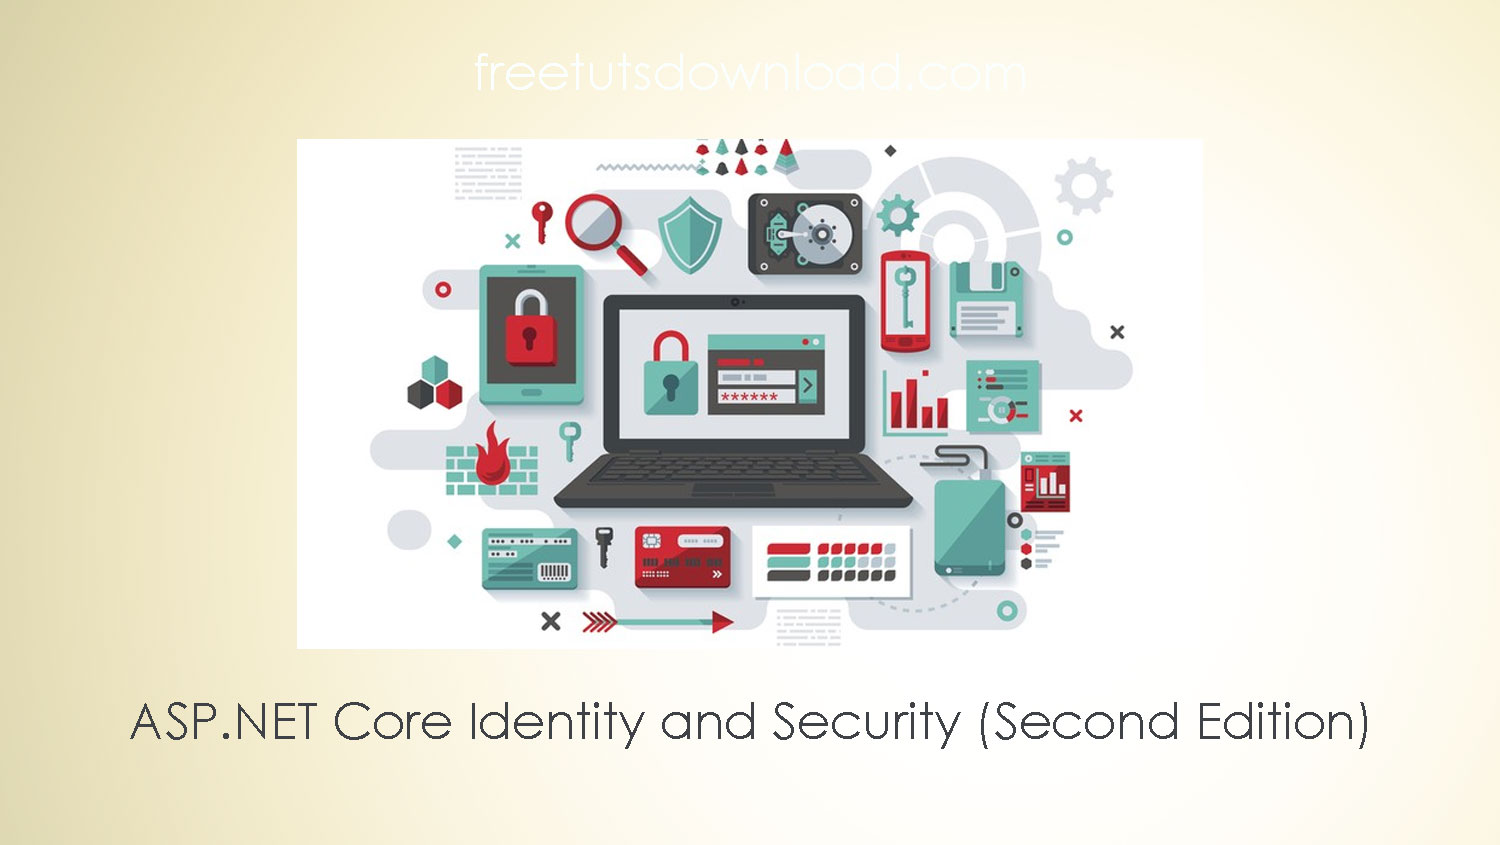 ASP.NET Core Identity and Security (Second Edition) Free Download